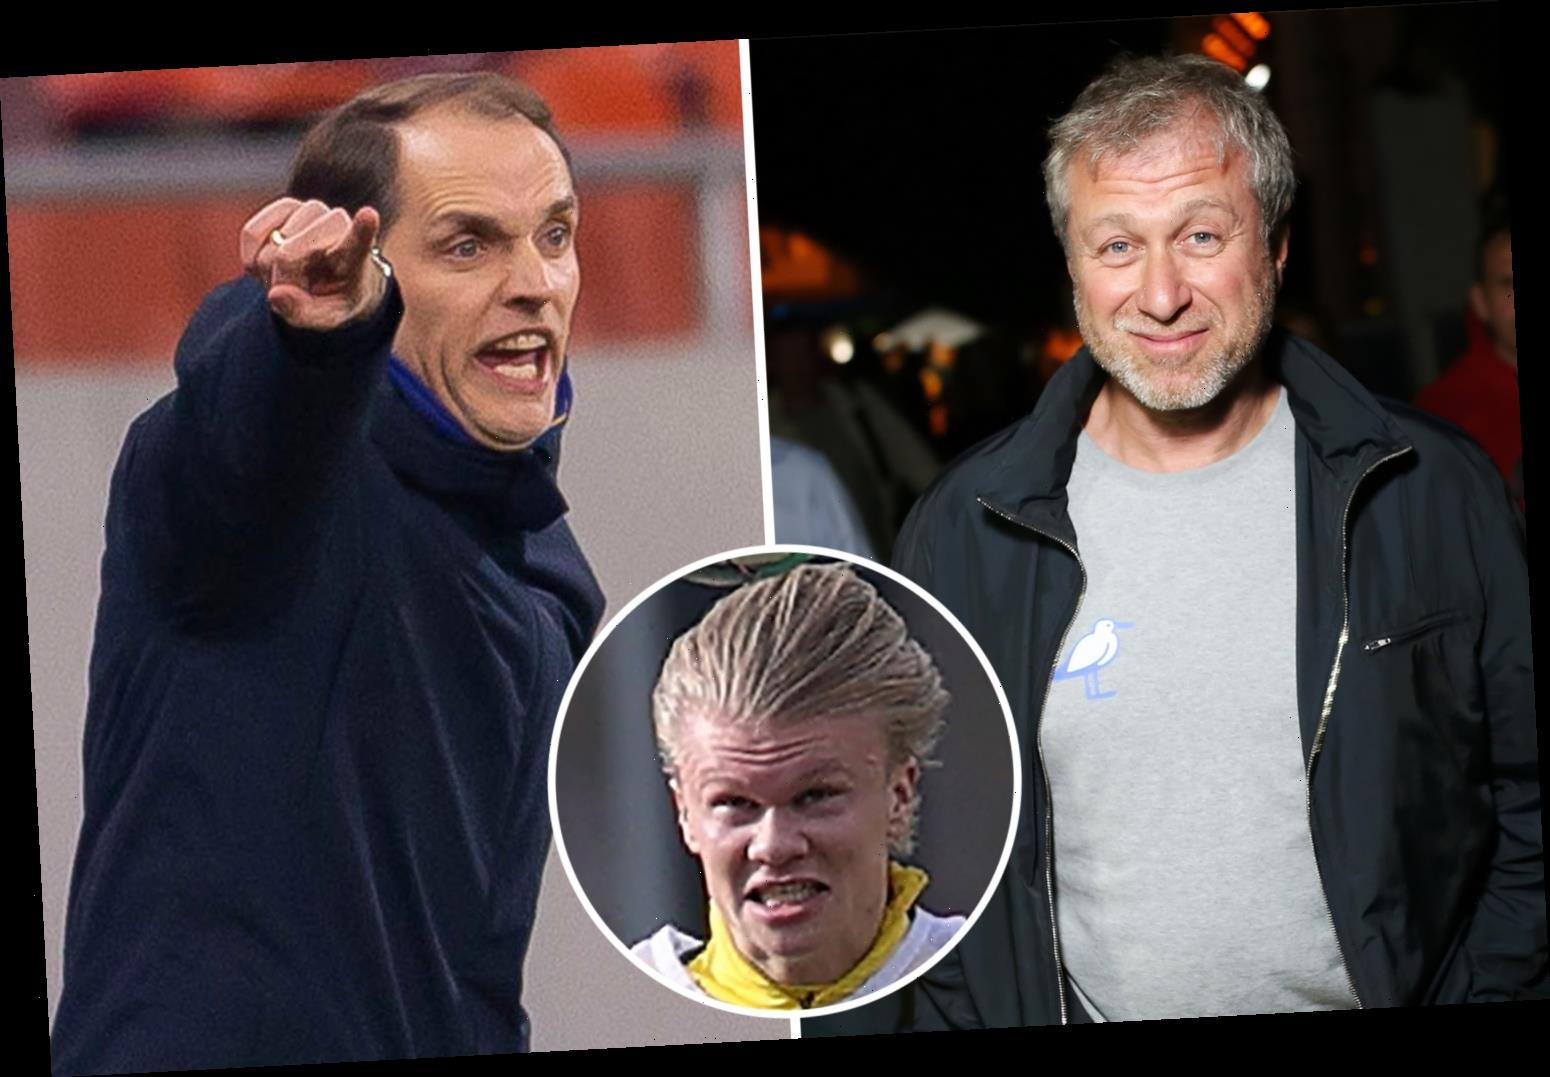 Chelsea boss Thomas Tuchel 'set to be handed £260m transfer summer warchest by Roman Abramovich to land Haaland and Co'